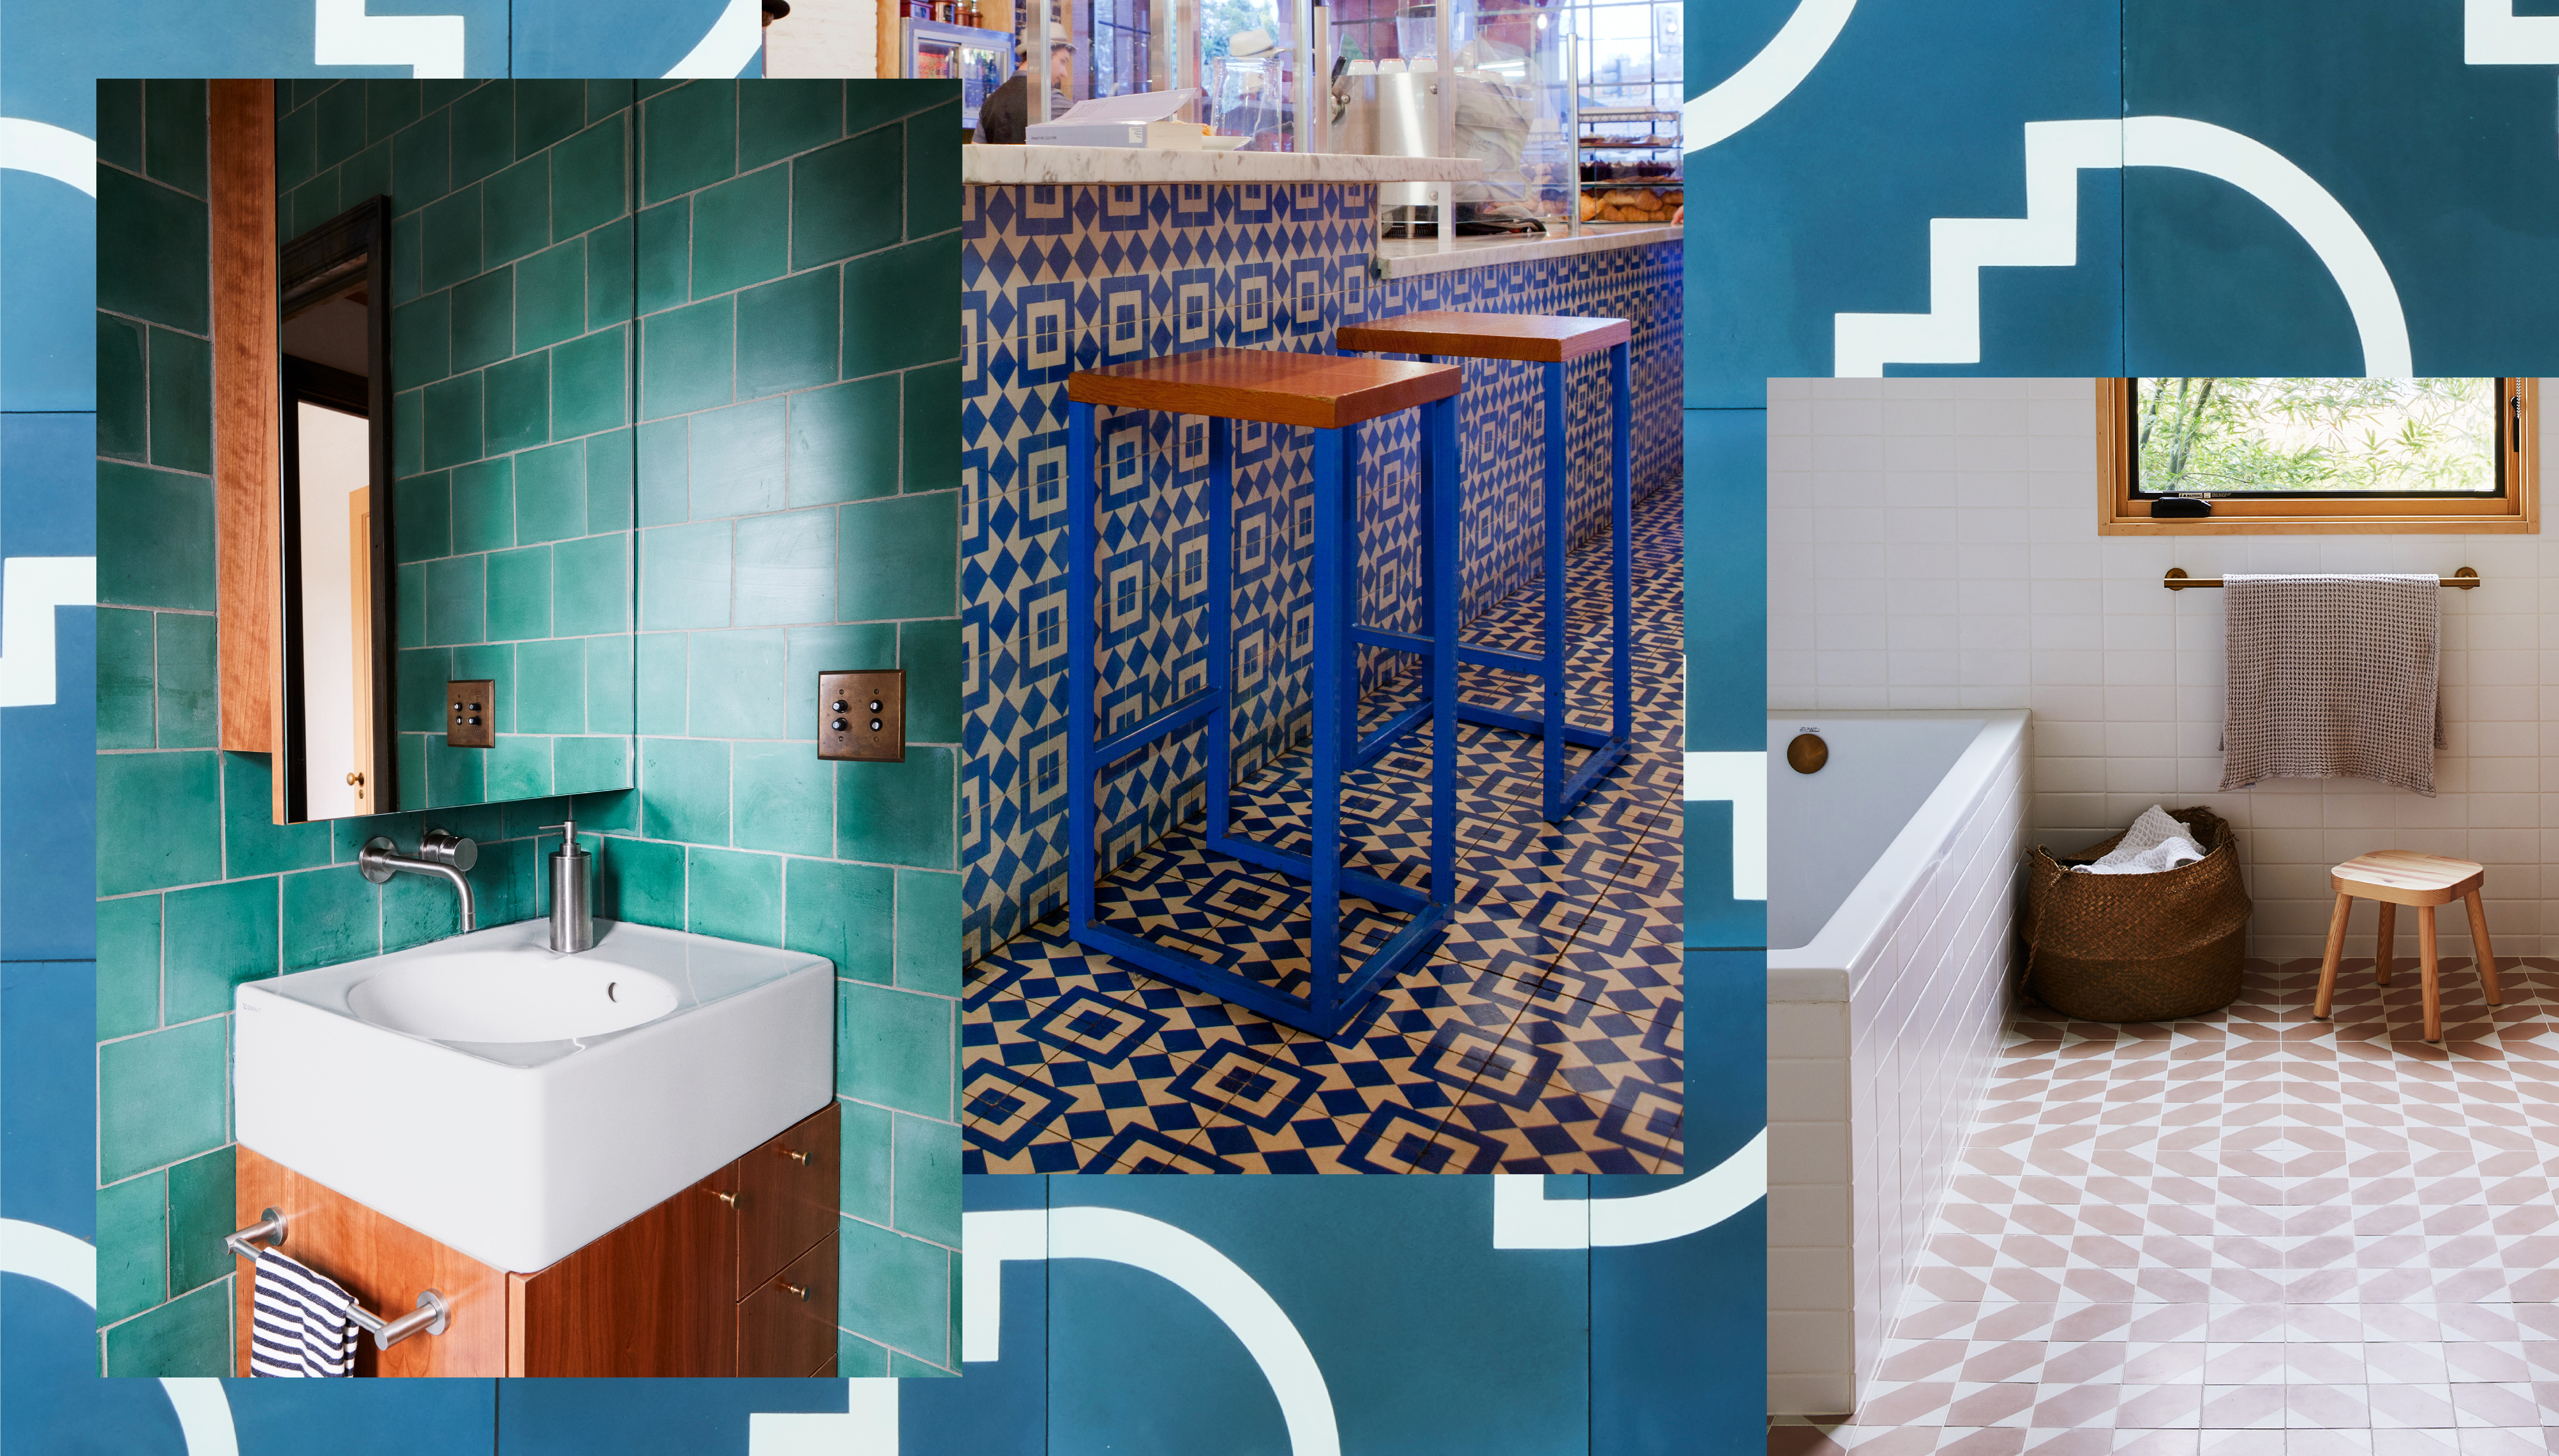 A collage of rooms with tile